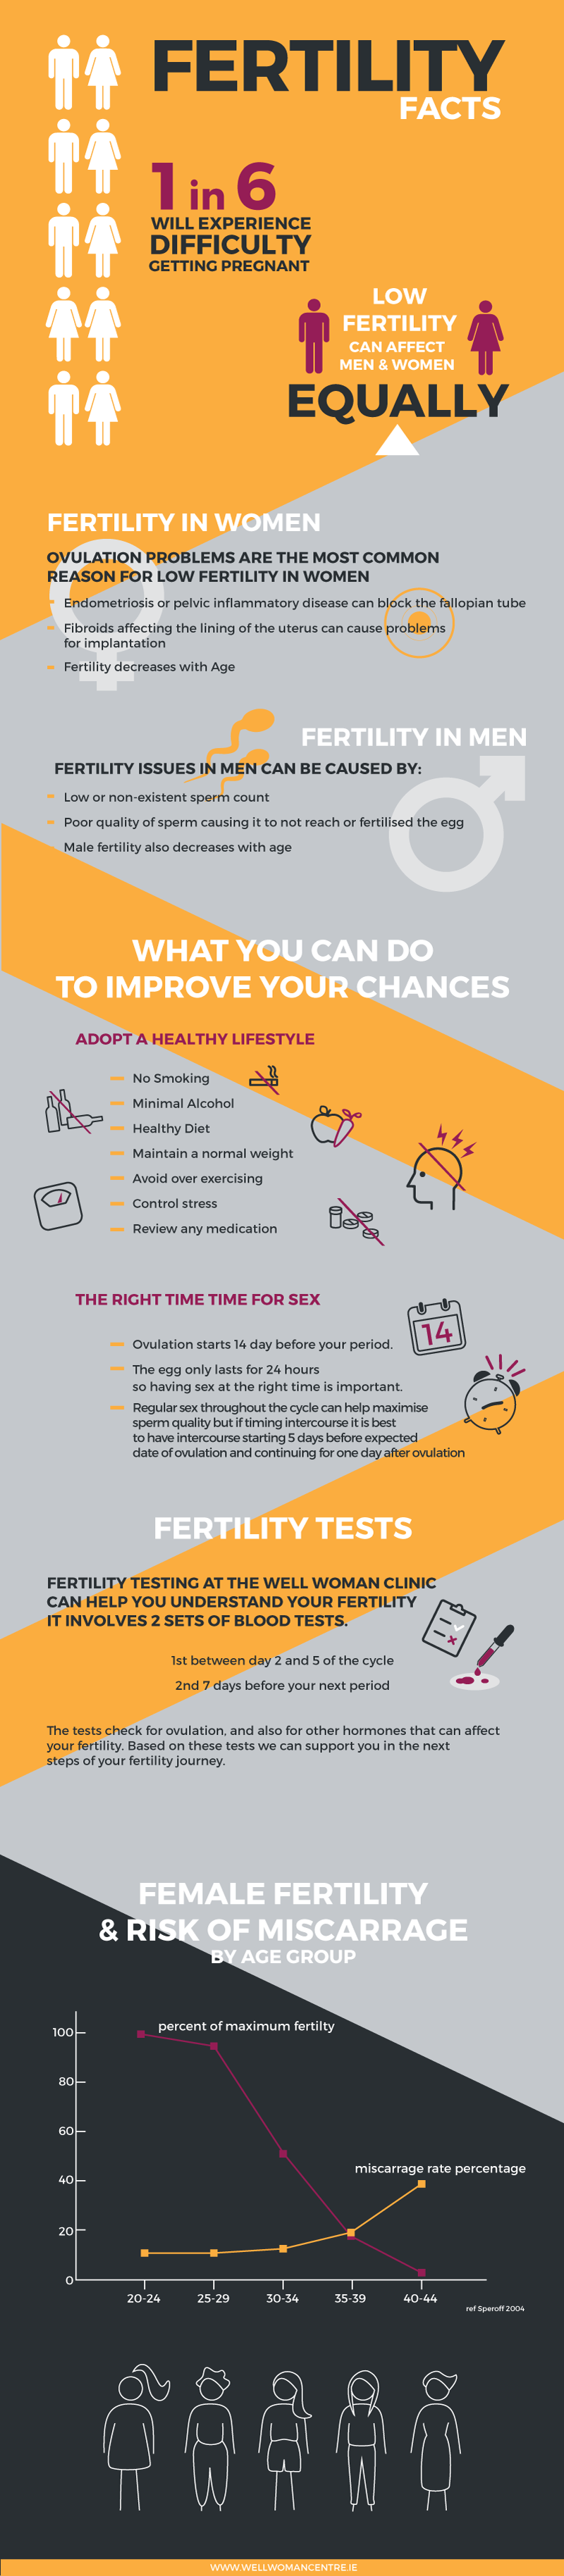 DWWC_Fertility_Infographic